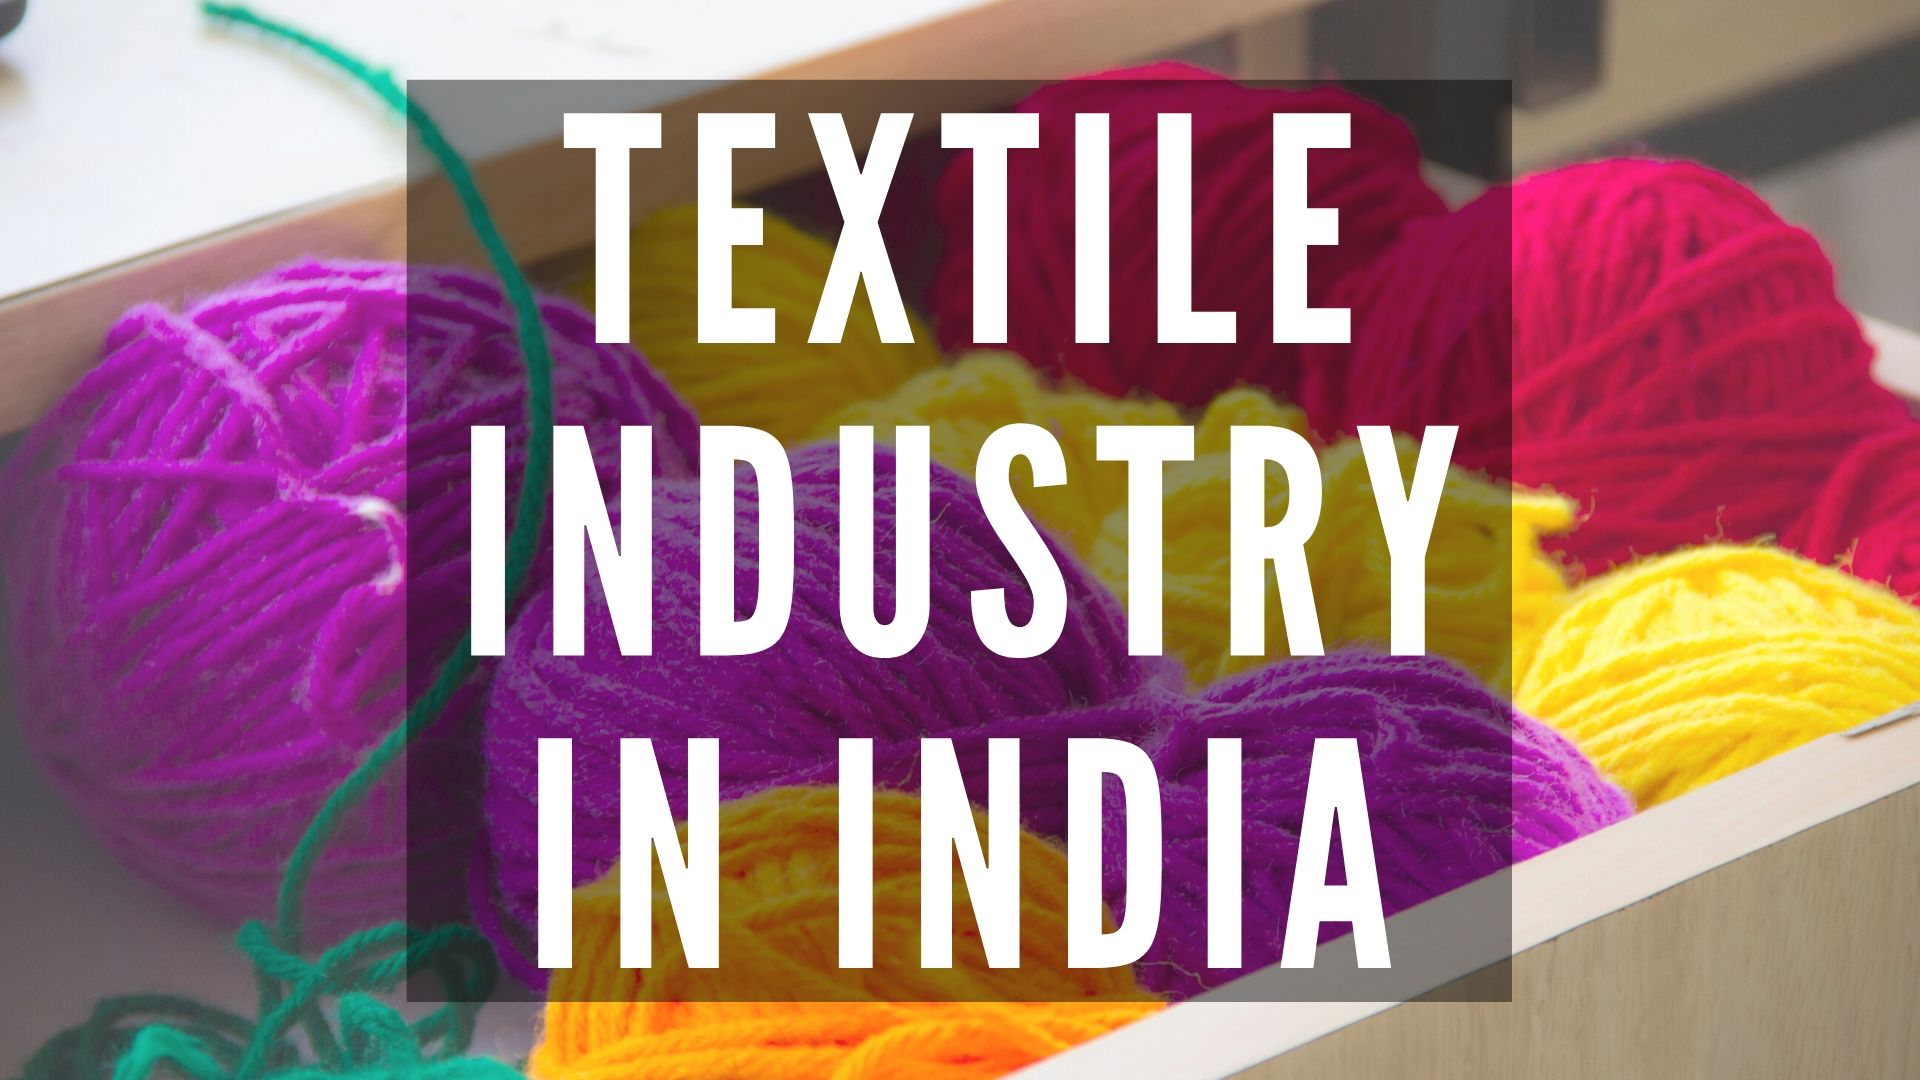 Best textile industries in india: Textile Industry In India